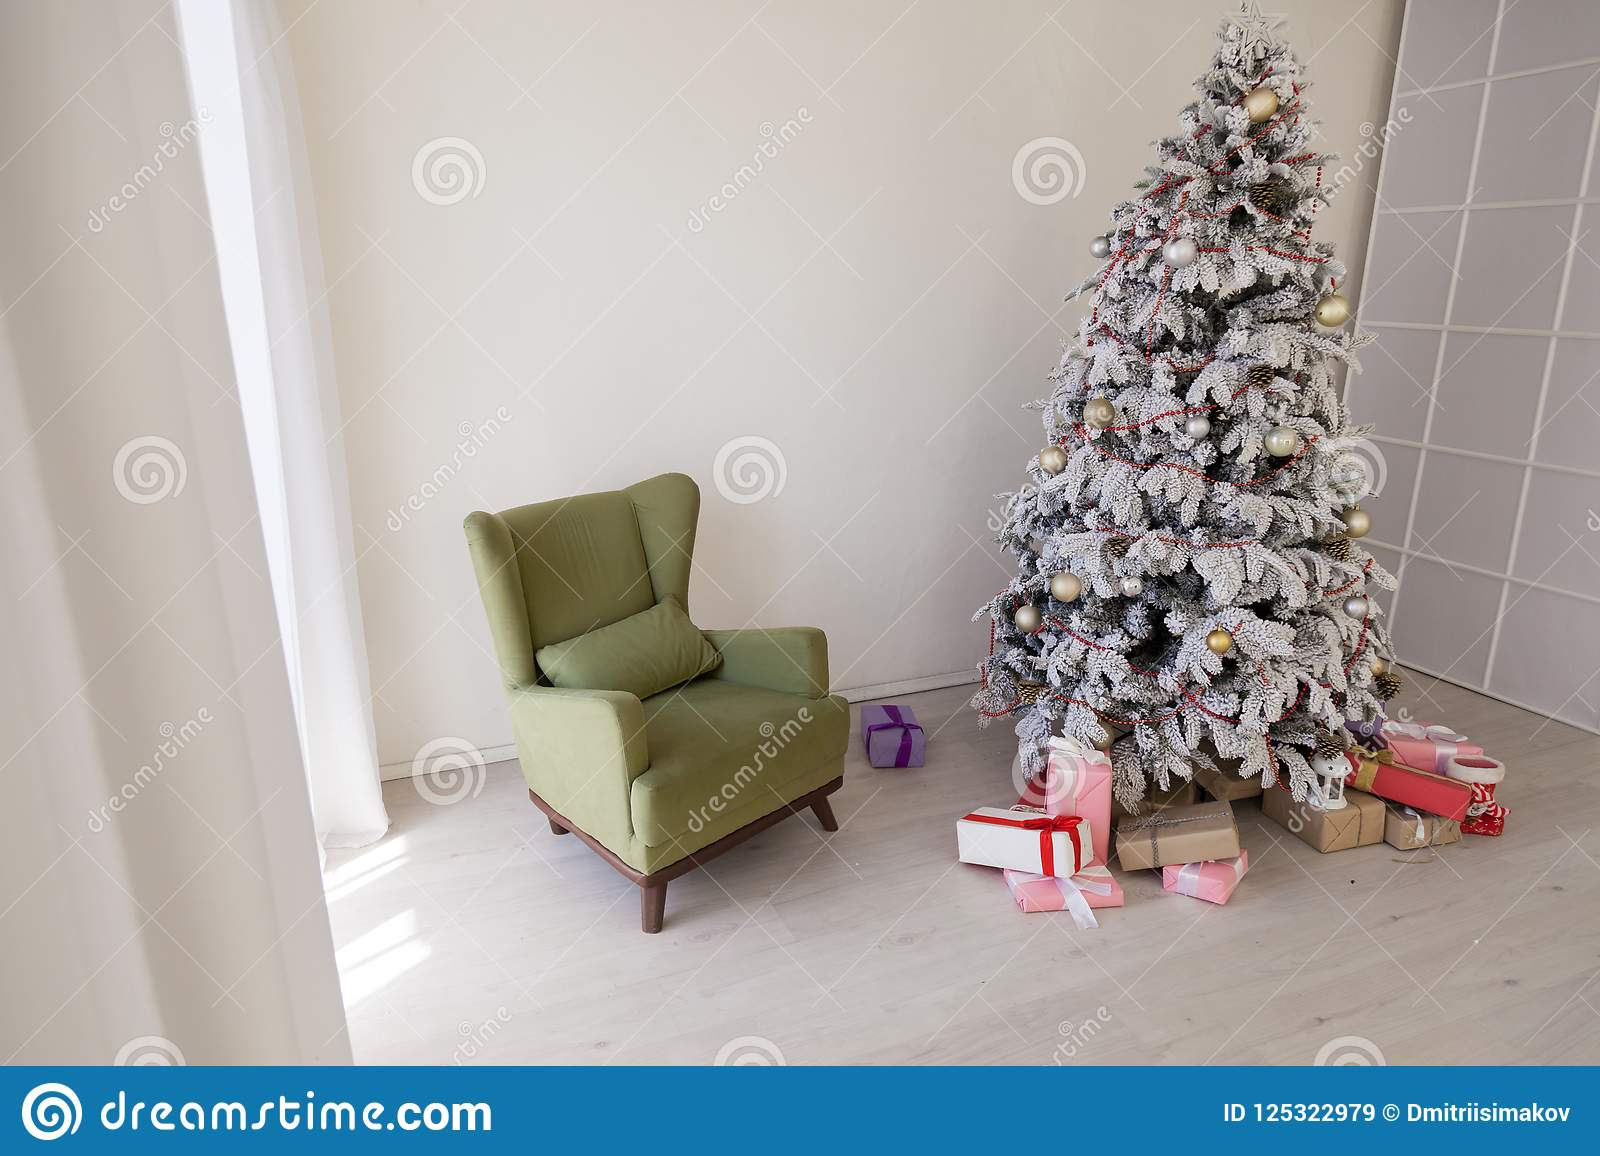 Christmas tree with presents new year white scenery